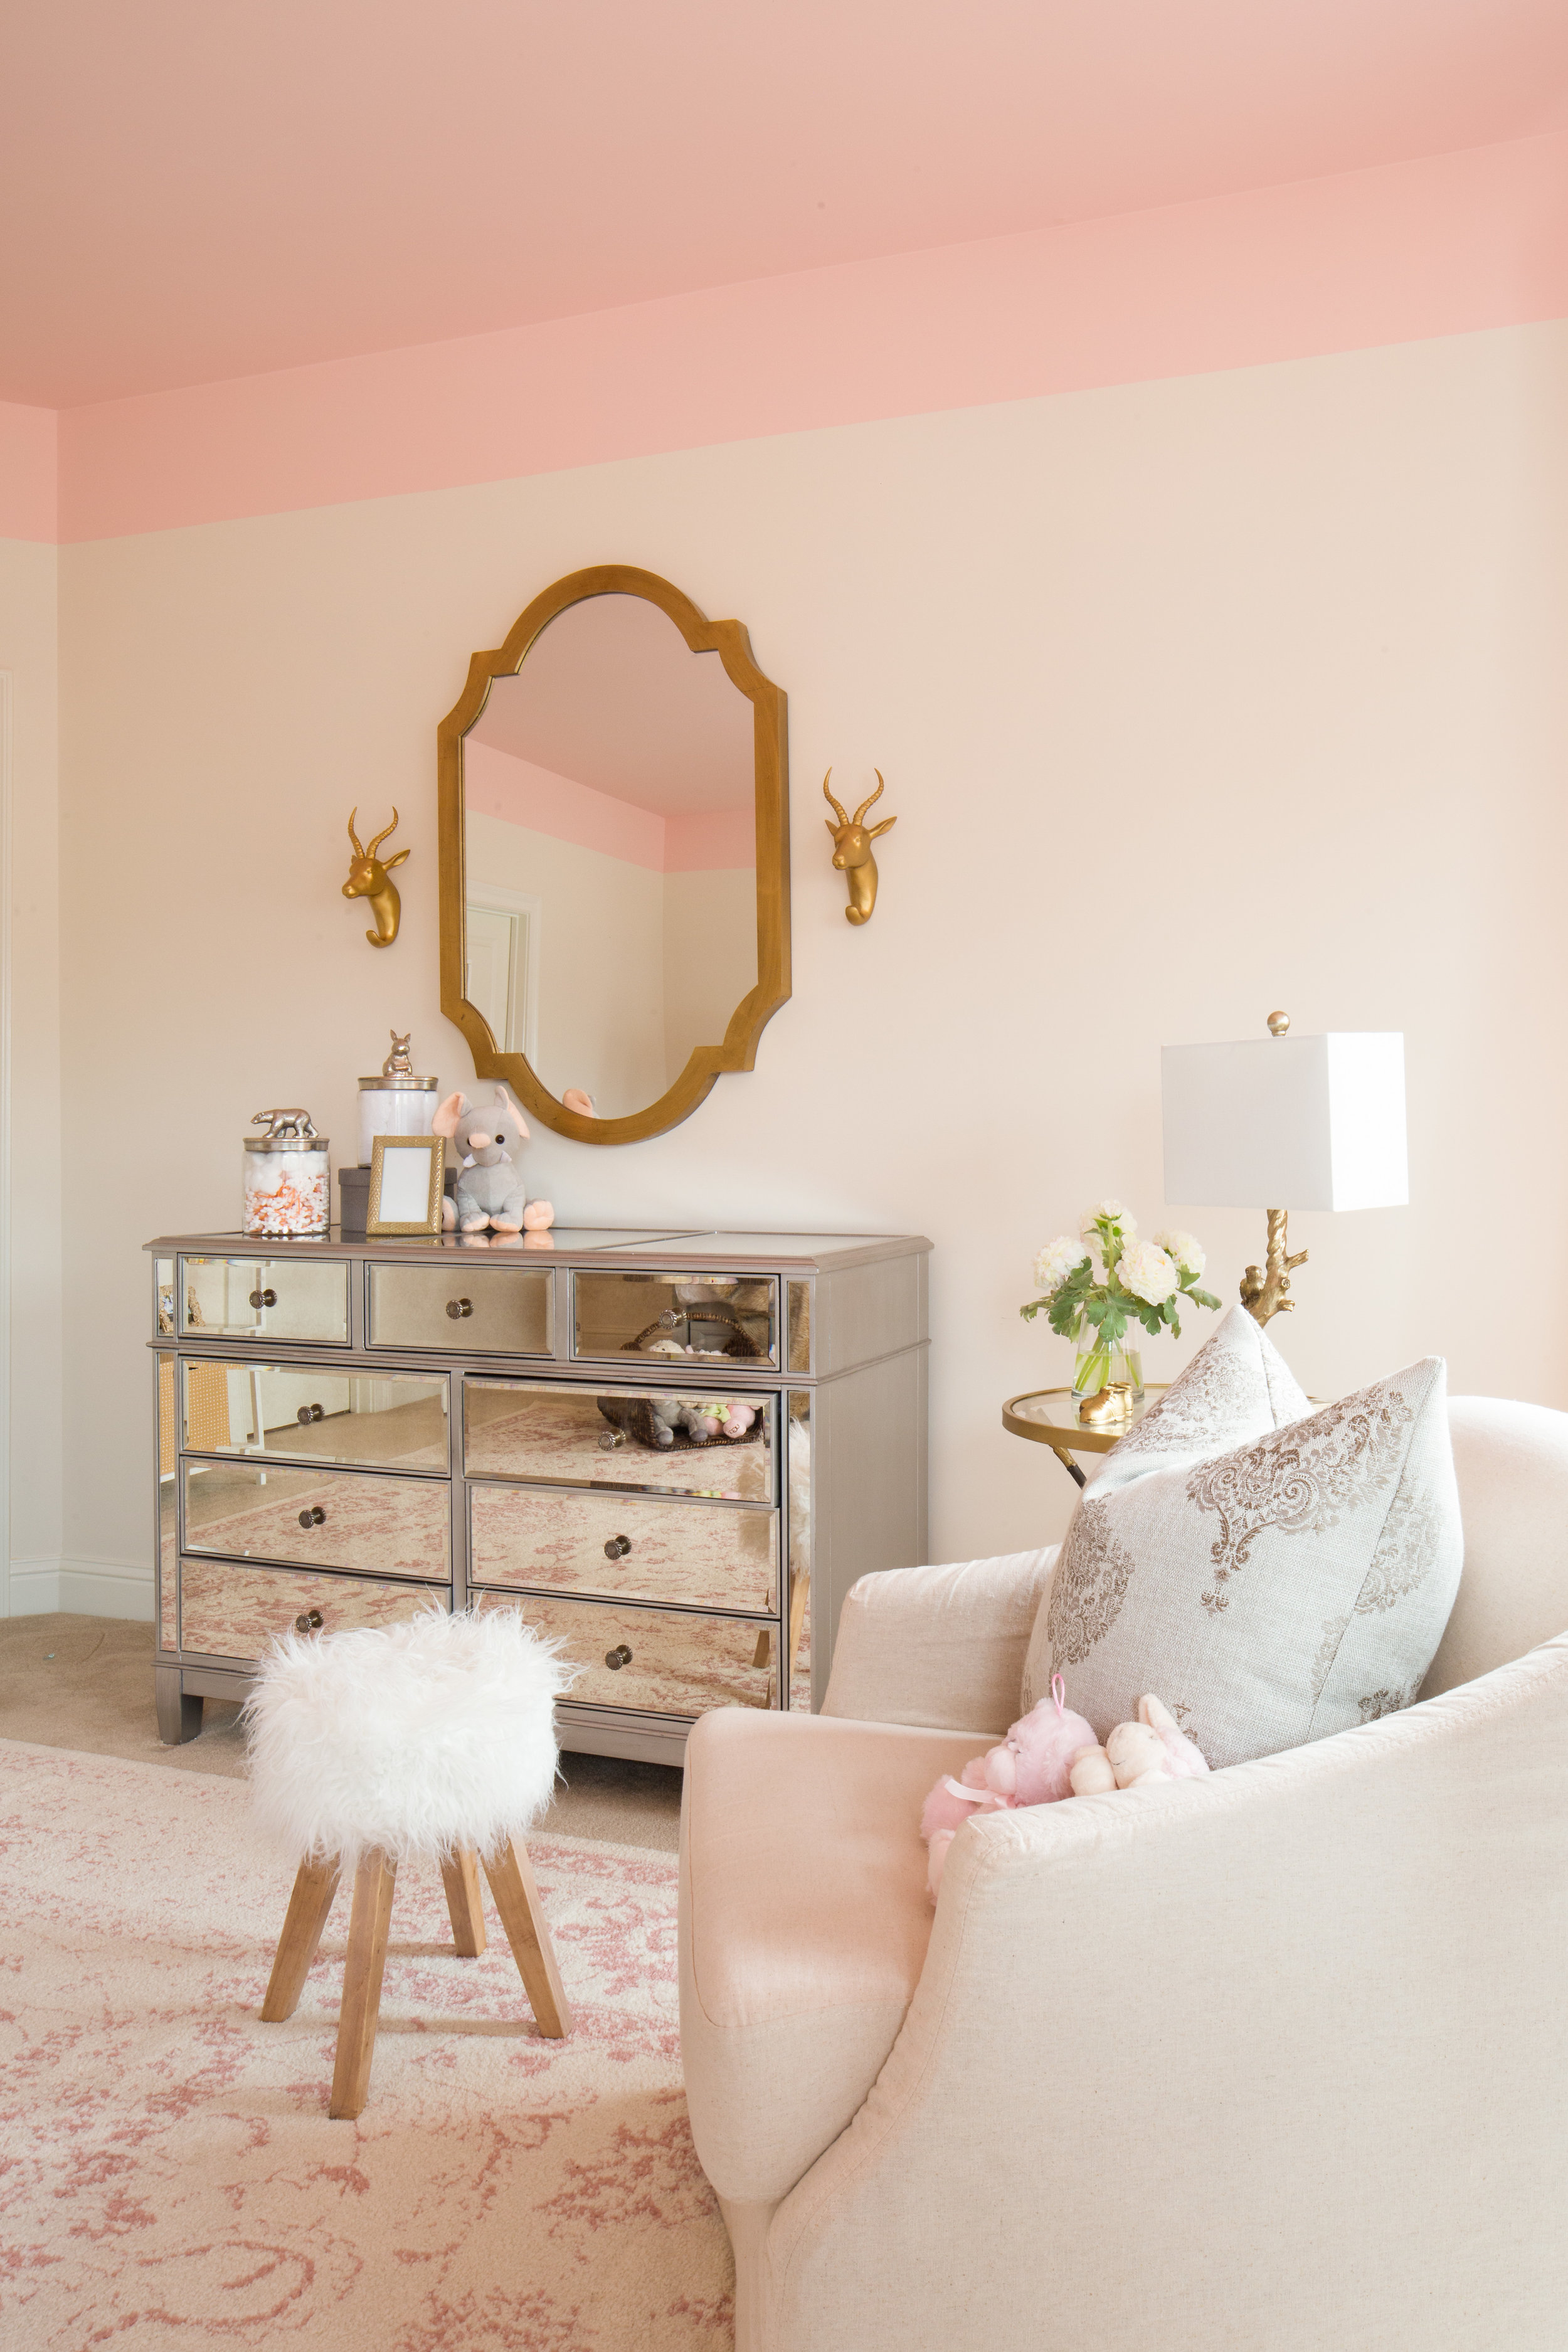 PRETTY PINK NURSERY   Graceful nursery for a first time mom, creates a calming yet enticing oasis for her newborn with whimsical charm.